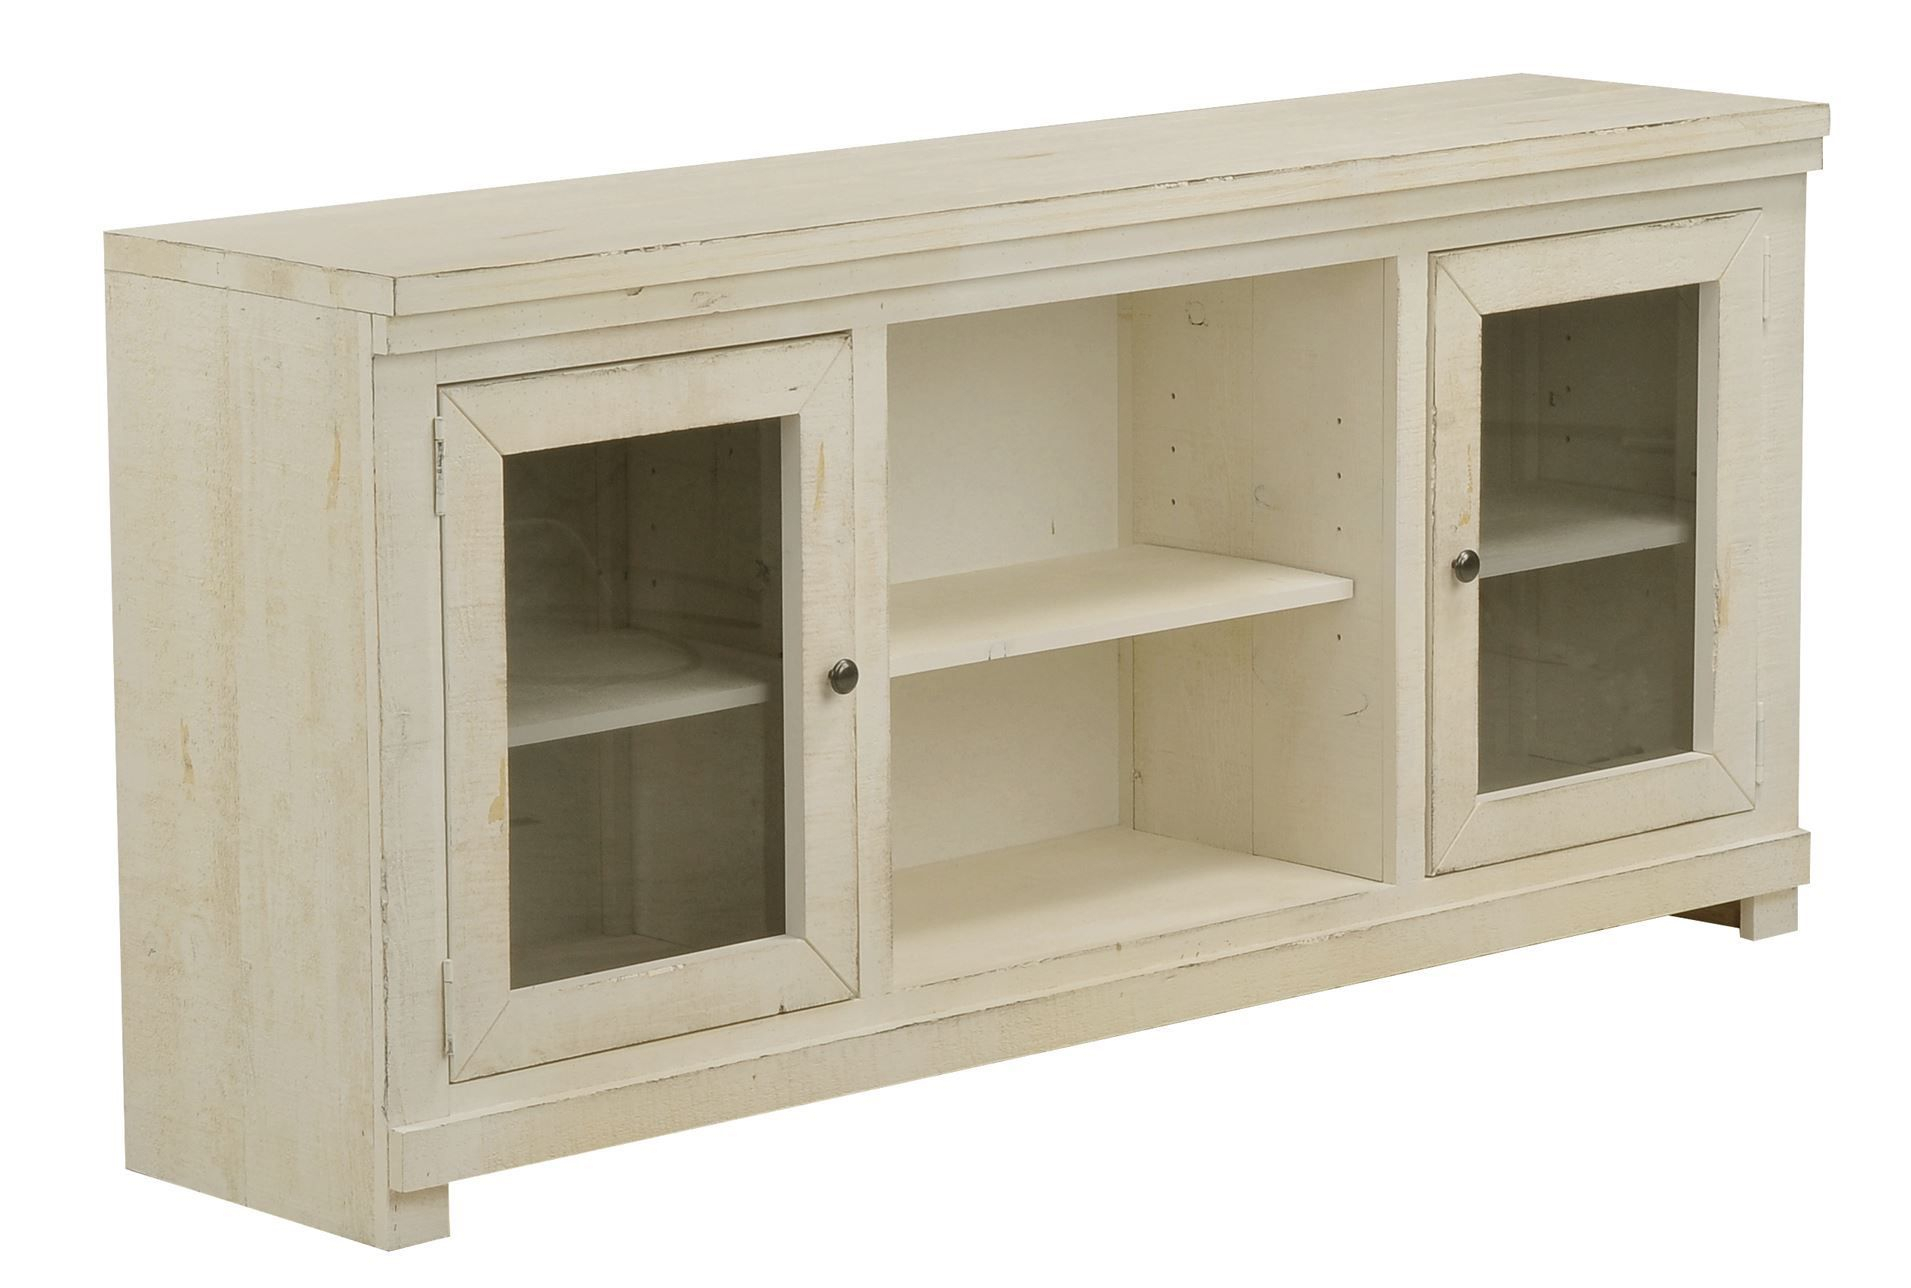 Sinclair White 68 Inch Tv Stand | For The Home | Living Room Designs Intended For Sinclair White 64 Inch Tv Stands (View 21 of 30)